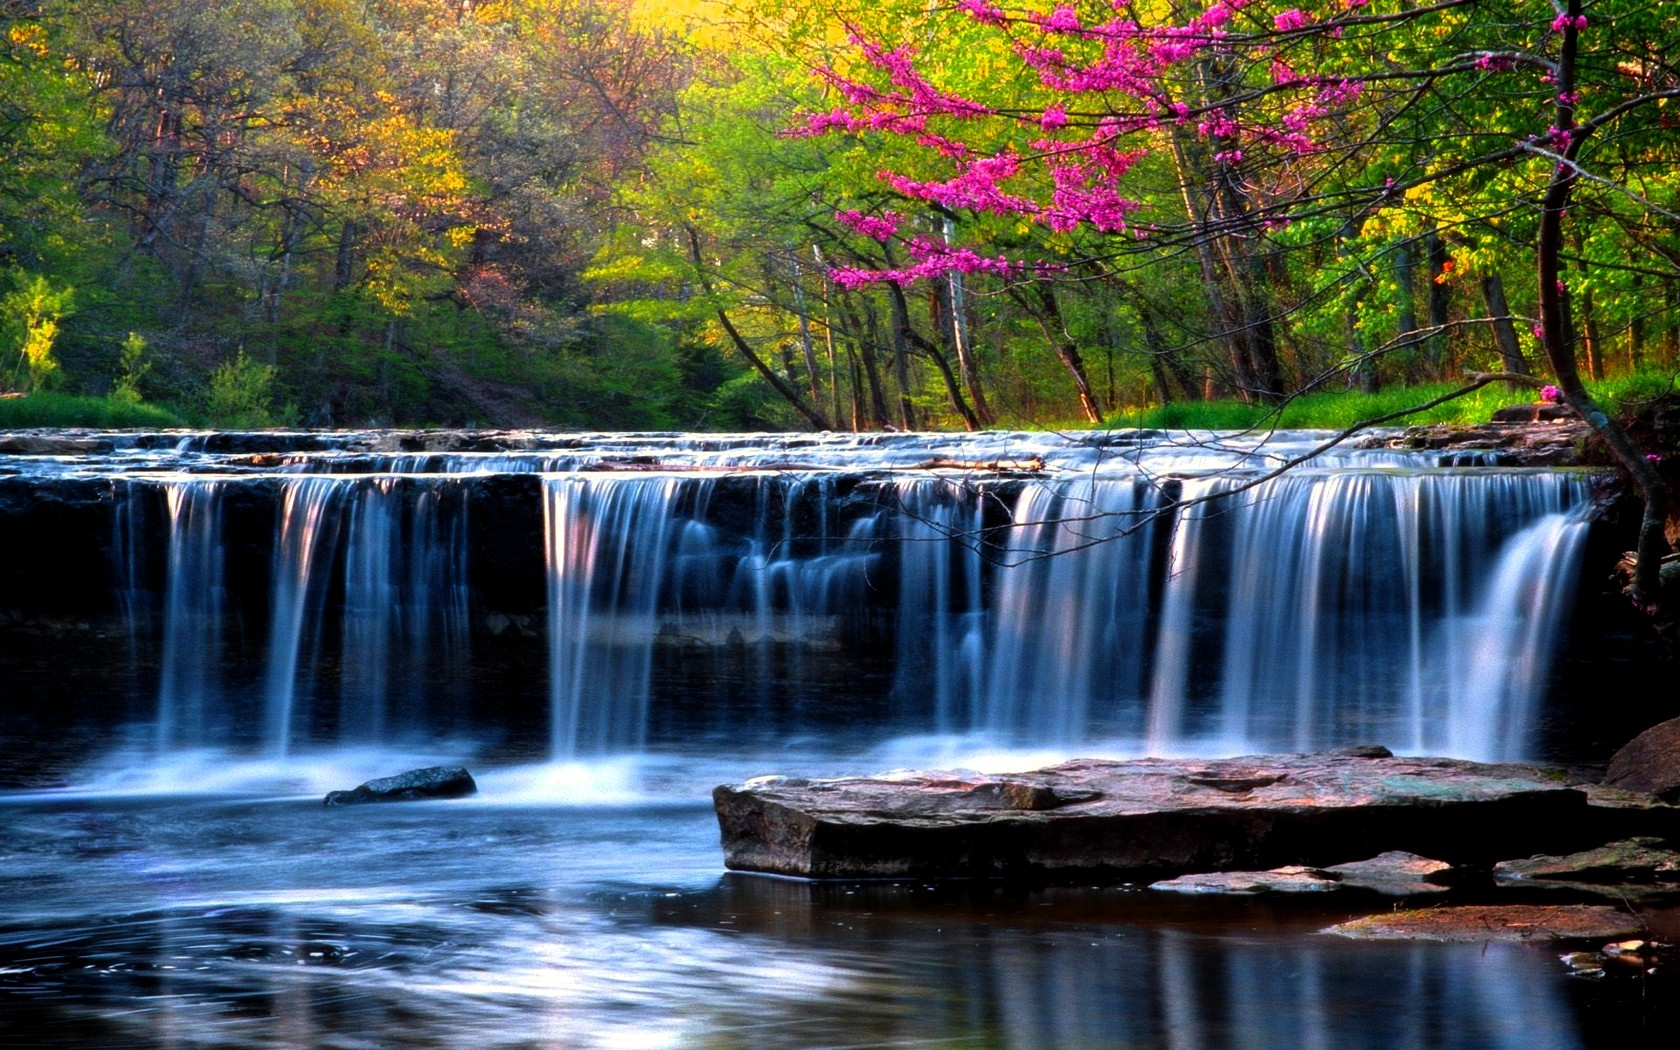 waterfalls-nature-spring-falls-forest-wallpaper-jungle-waterfall